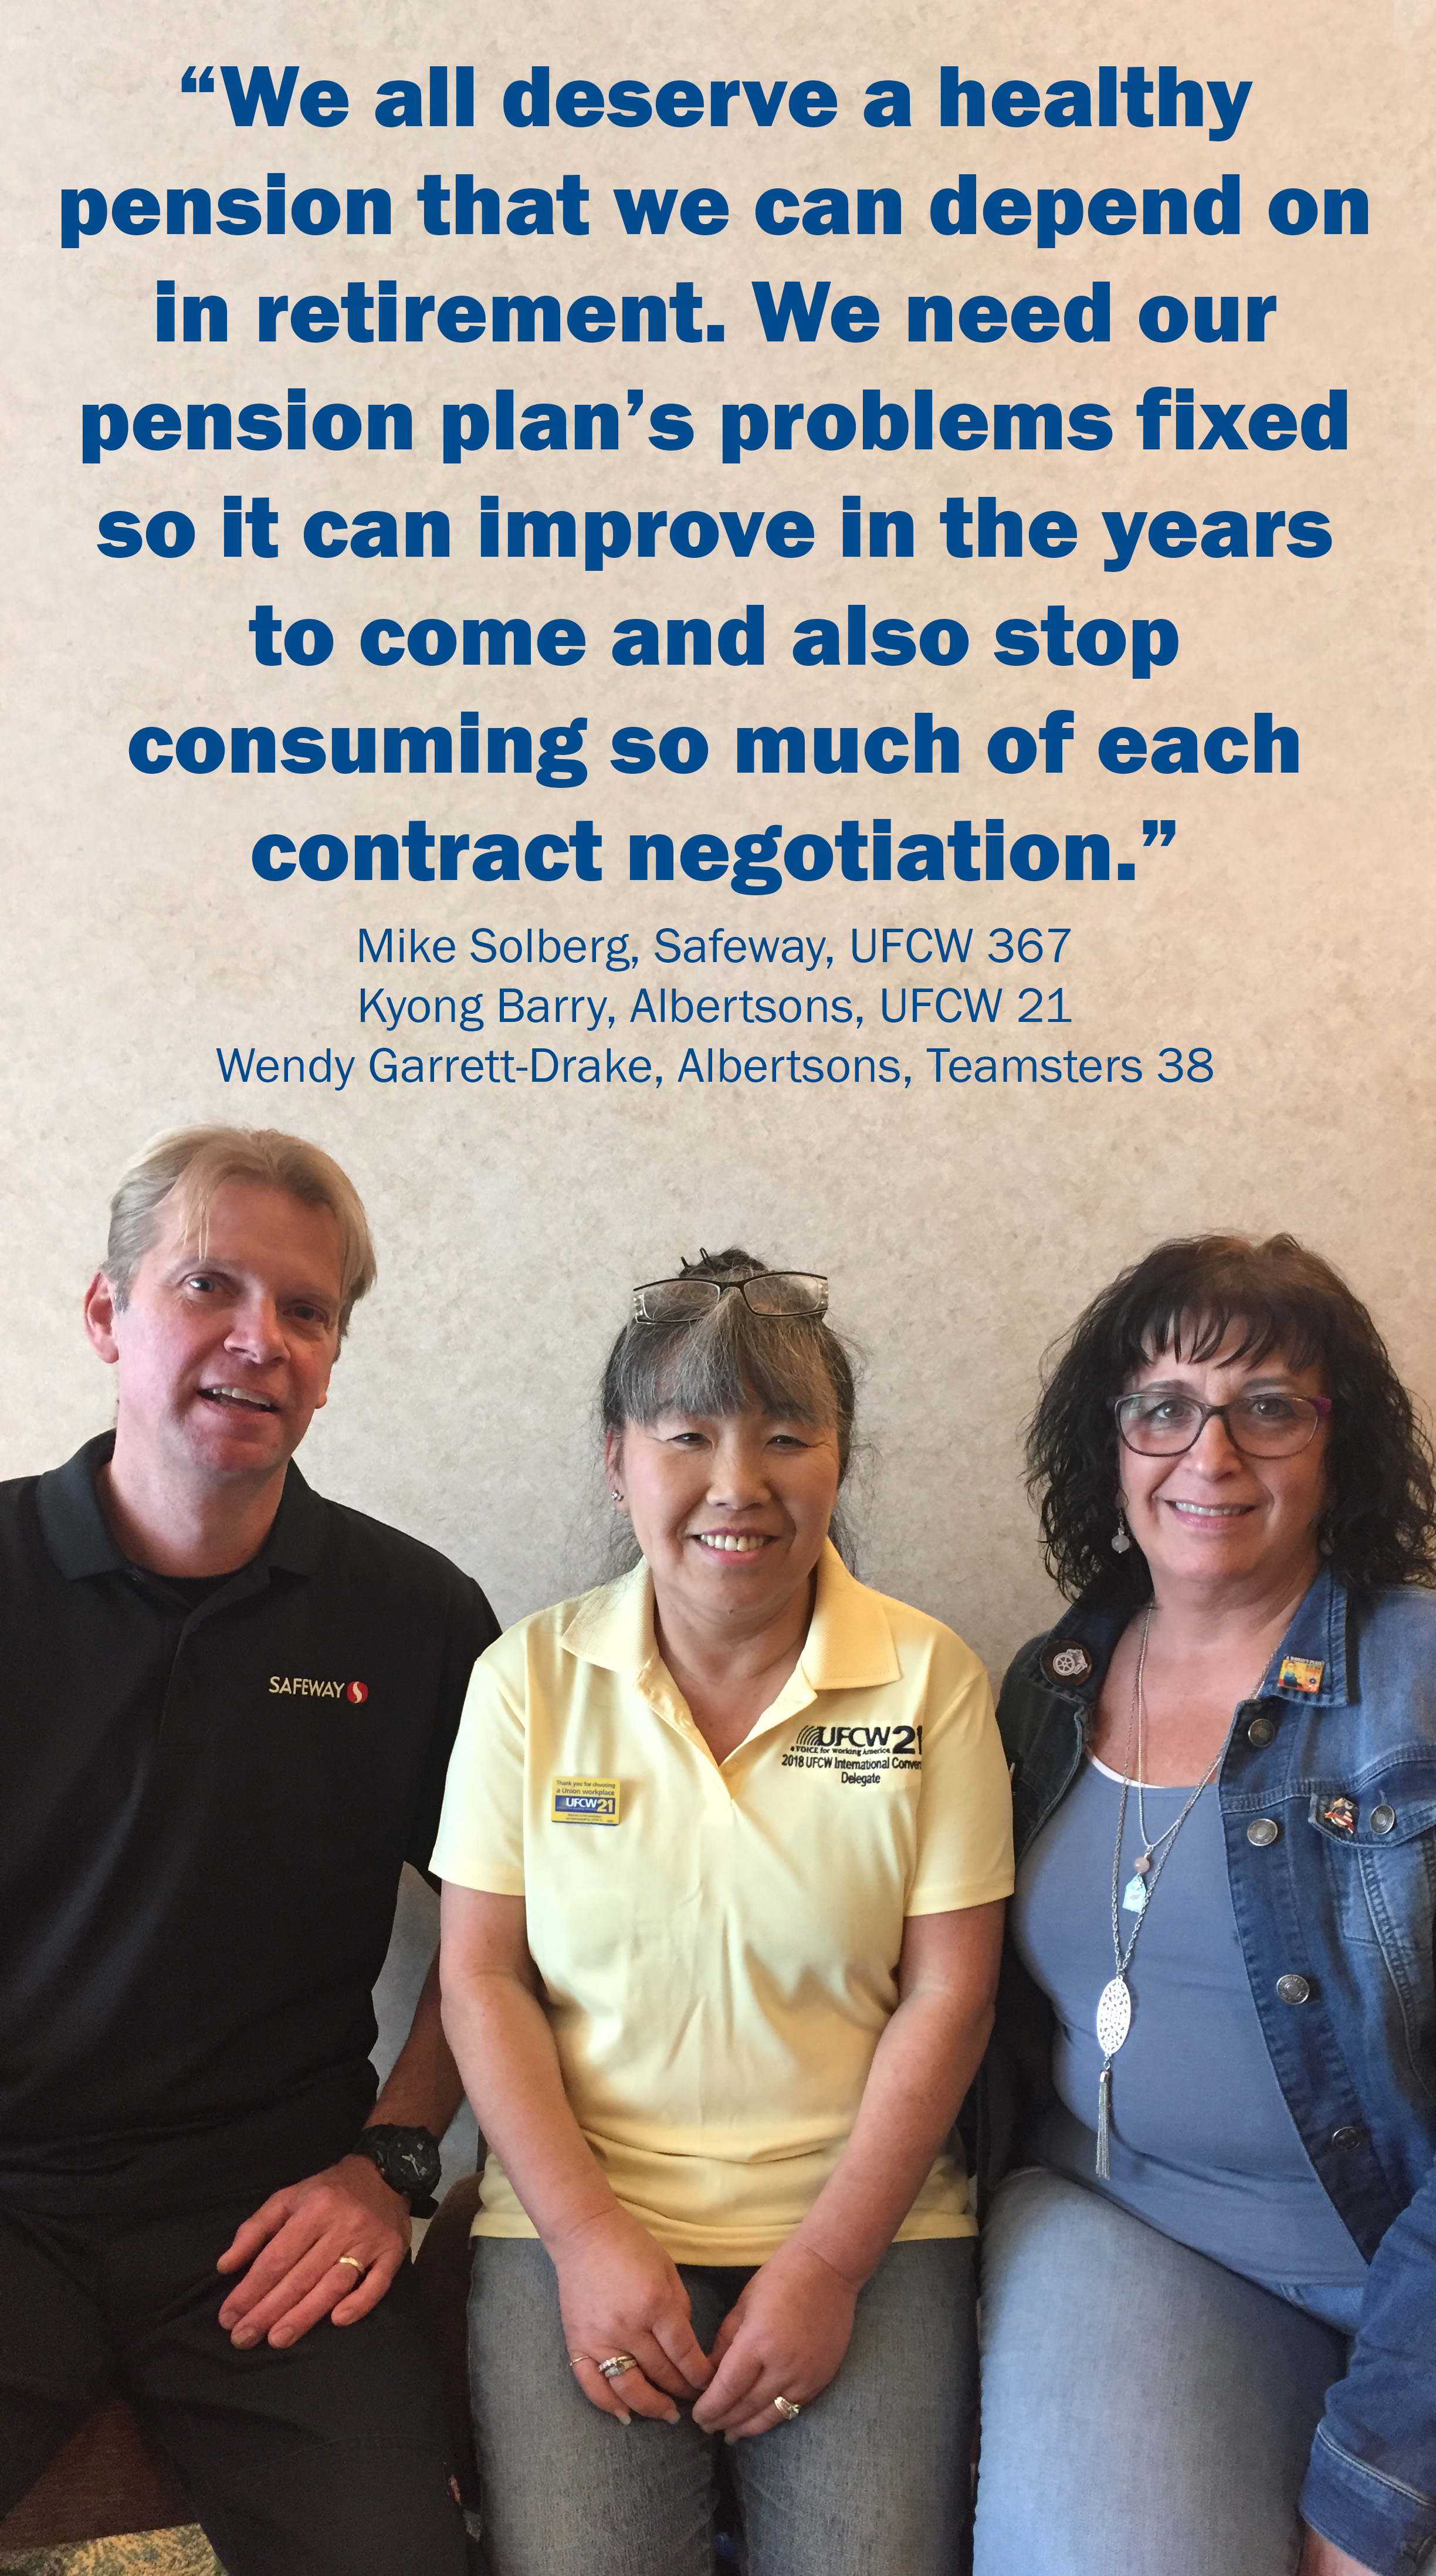 Bargaining team members Michaela and Kyong and Jeff pension quote.jpg